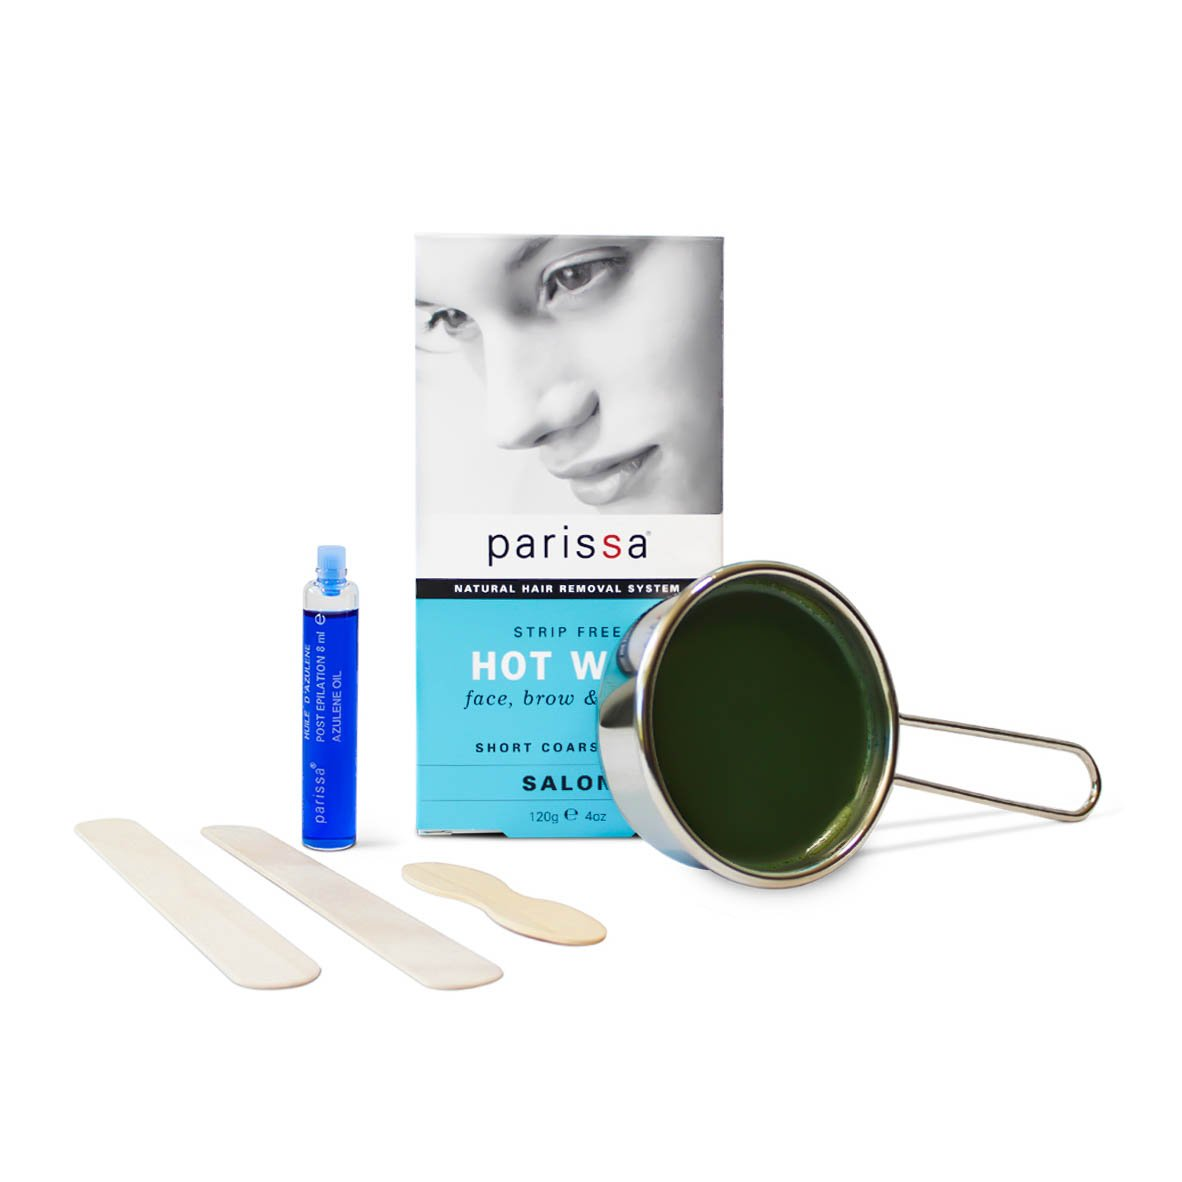 Parissa Hot Wax, Bikini & Brazilian Waxing Kit with Strip Free Hard Wax, 4oz. (120g) Wax, 3 Spatulas, Aftercare Oil